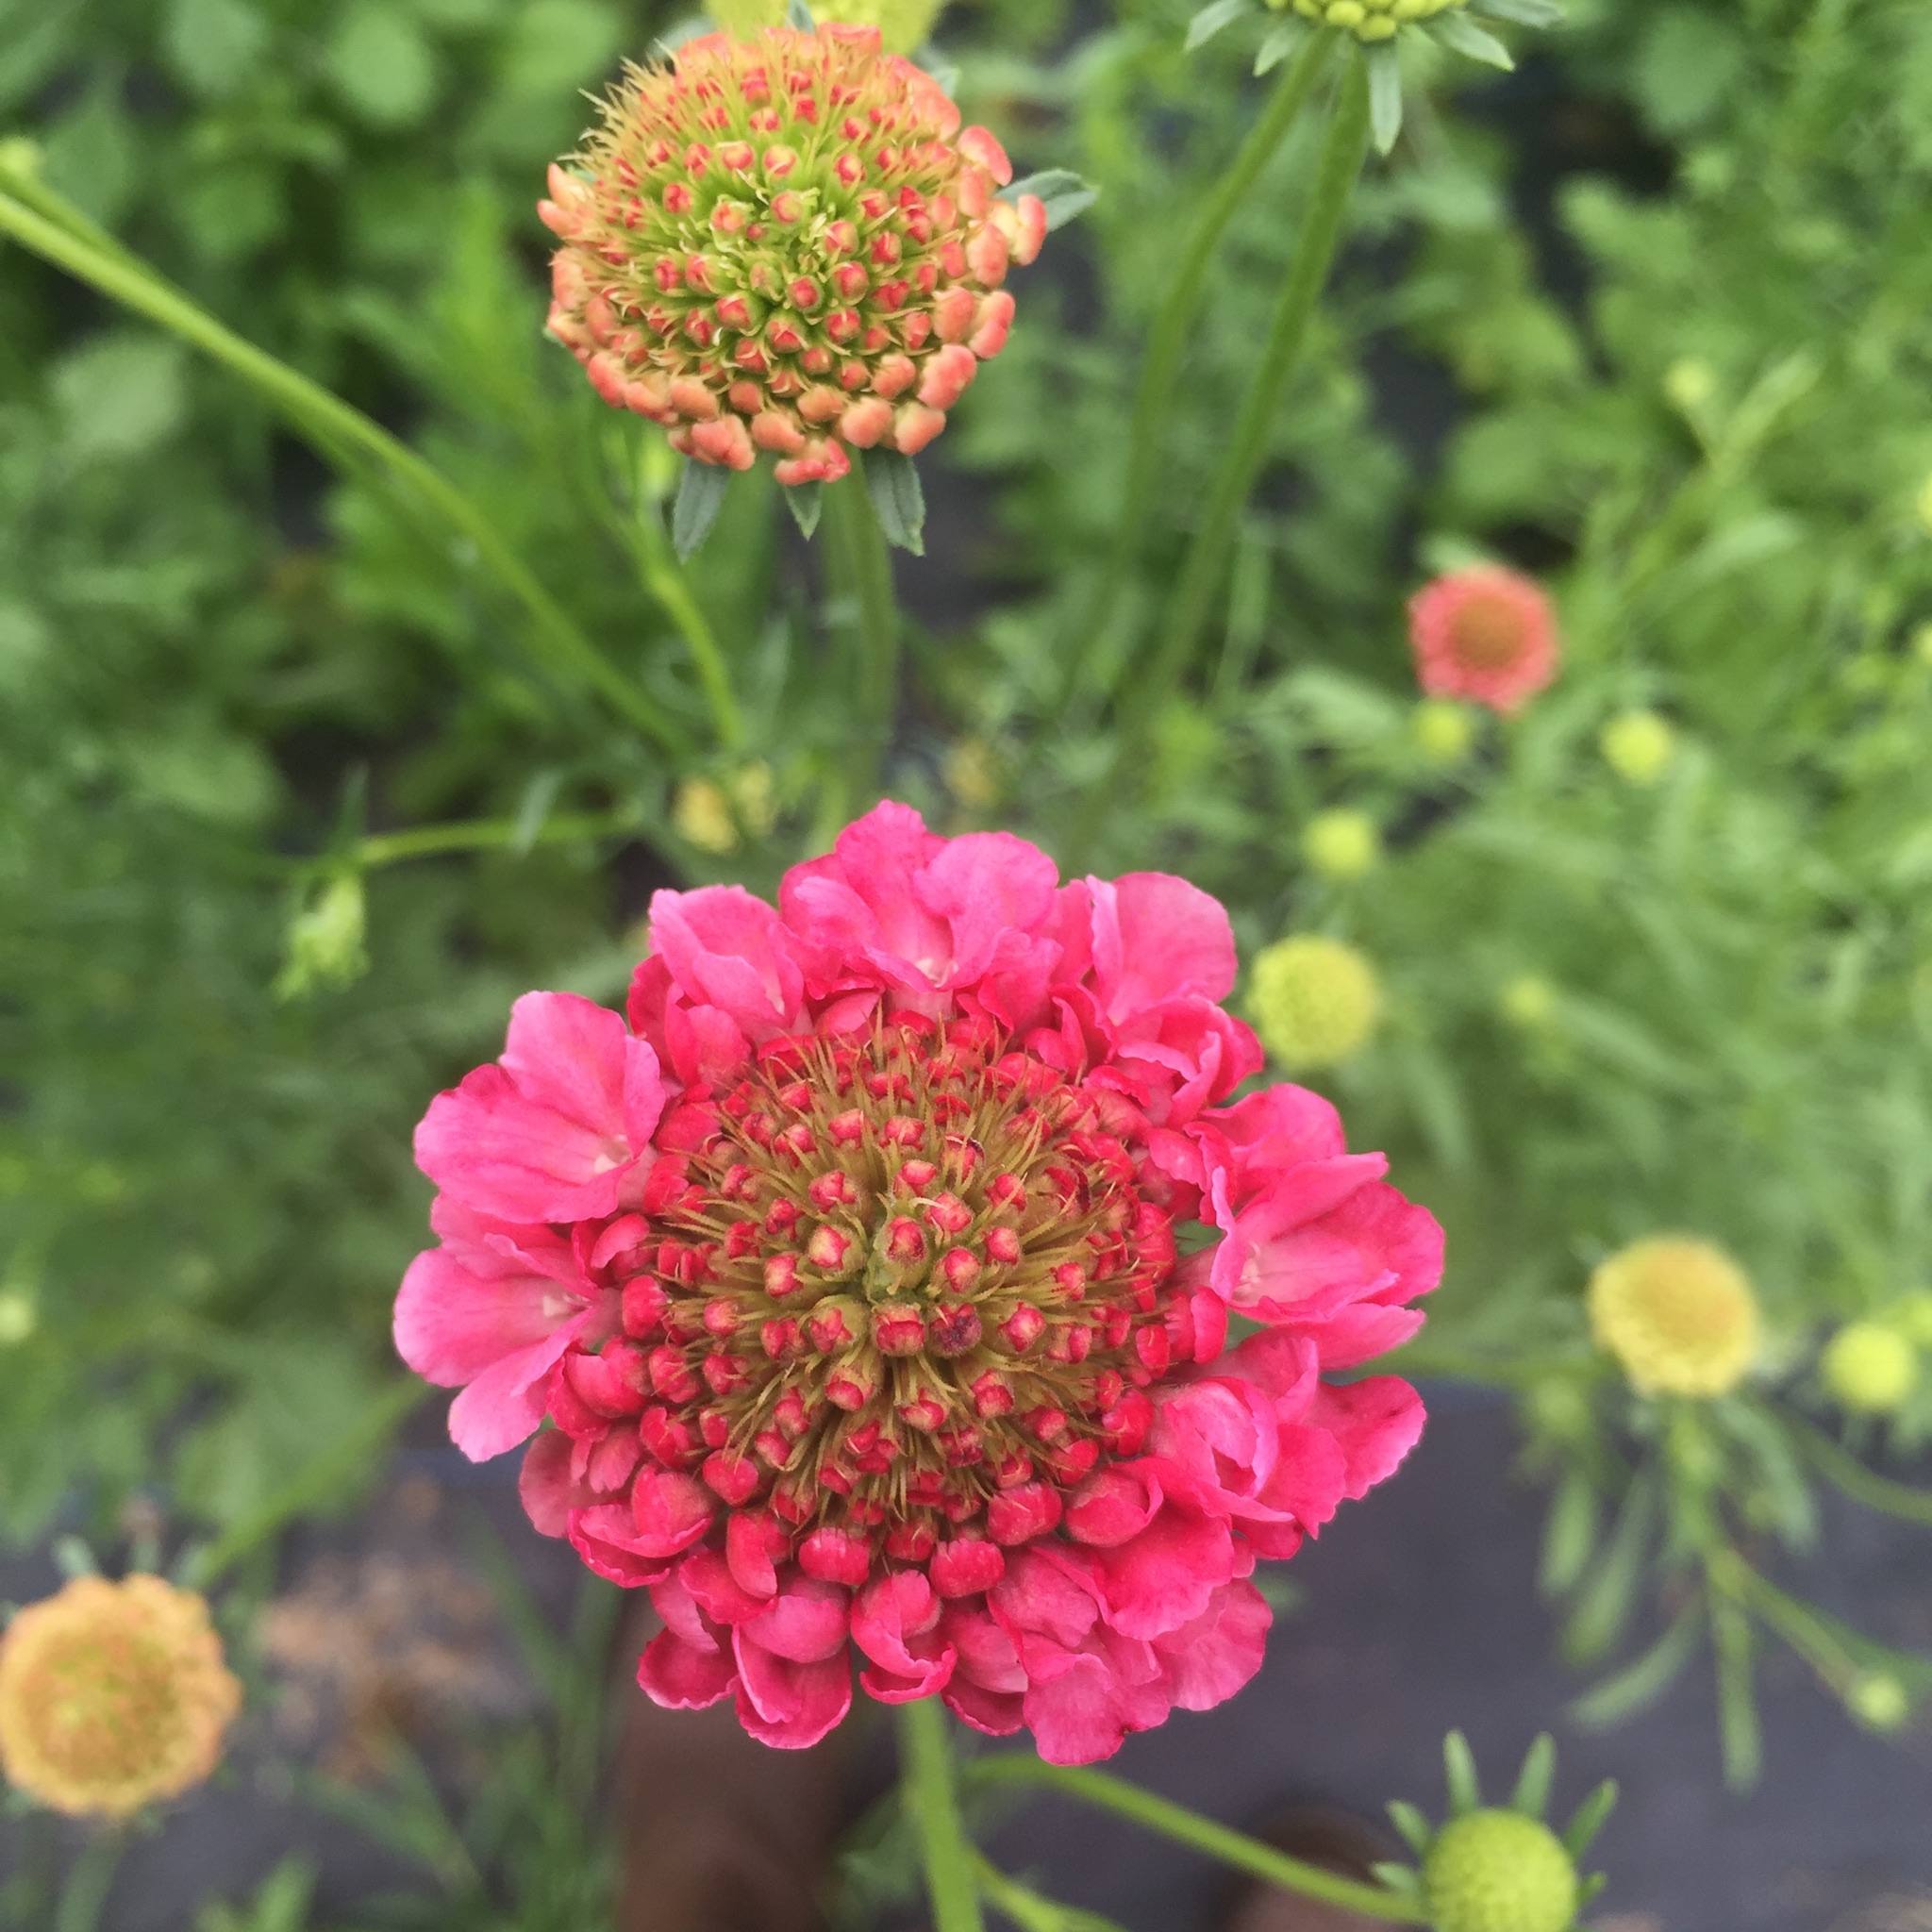 Scabiosa ~Pincushion Flower - Scabiosa are one of my absolute favorites! They grow well practically year round - they're very cold hardy so you can plant them in late fall for early spring blooms and they are heat tolerant. We plant them practically every week on the farm in a wide range of colors. Scabiosa are a staple in practically every bouquet that we create, whether for a wedding or grocery store since they add the perfect amount of whimsy and movement. To get the maximum vase life, harvest when the first petals begin to form on the edges of the pincushion.